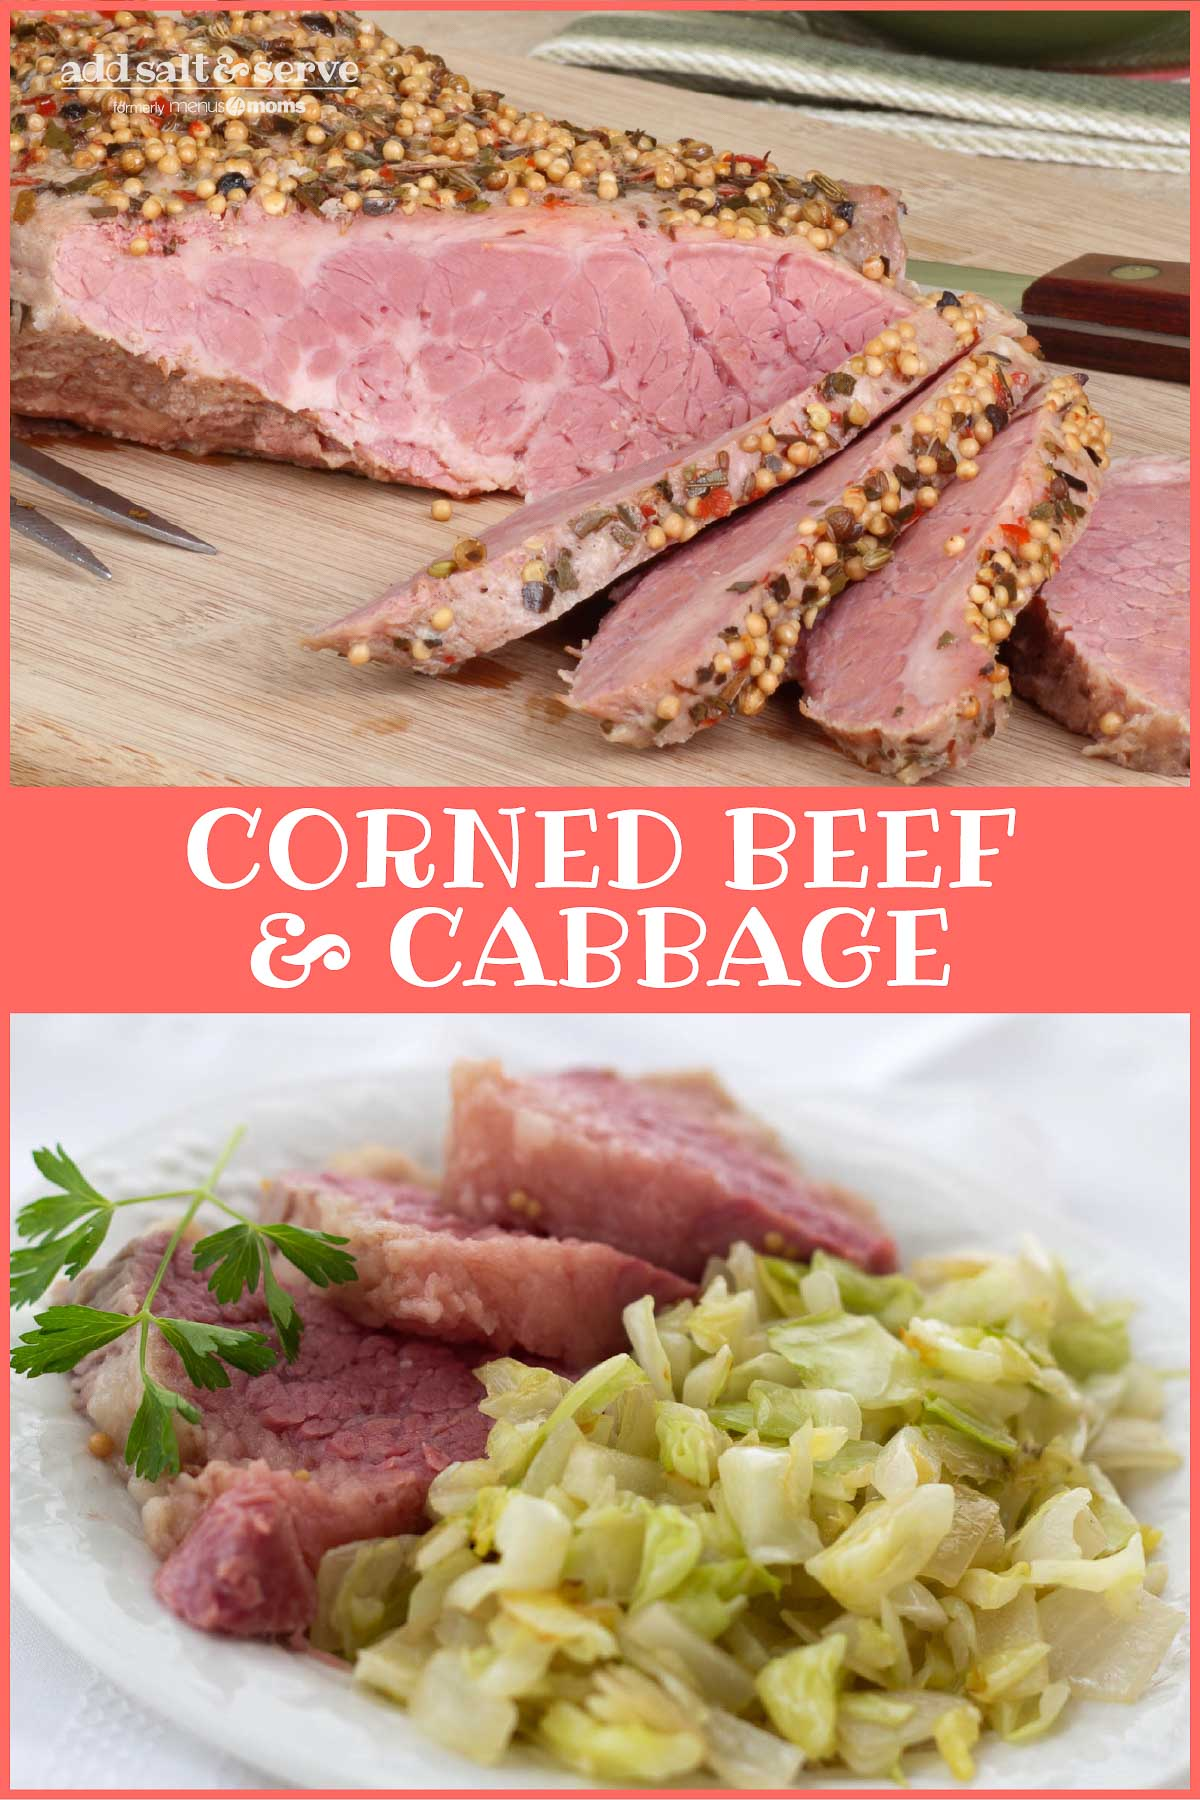 Composite image. Top photo is corned beef slices on a wooden cutting board. Bottom image is corned beef and cabbage on a white plate garnished with a sprig of parsley. Text is Add Salt & Serve formerly Menus4Moms Corned Beef & Cabbage